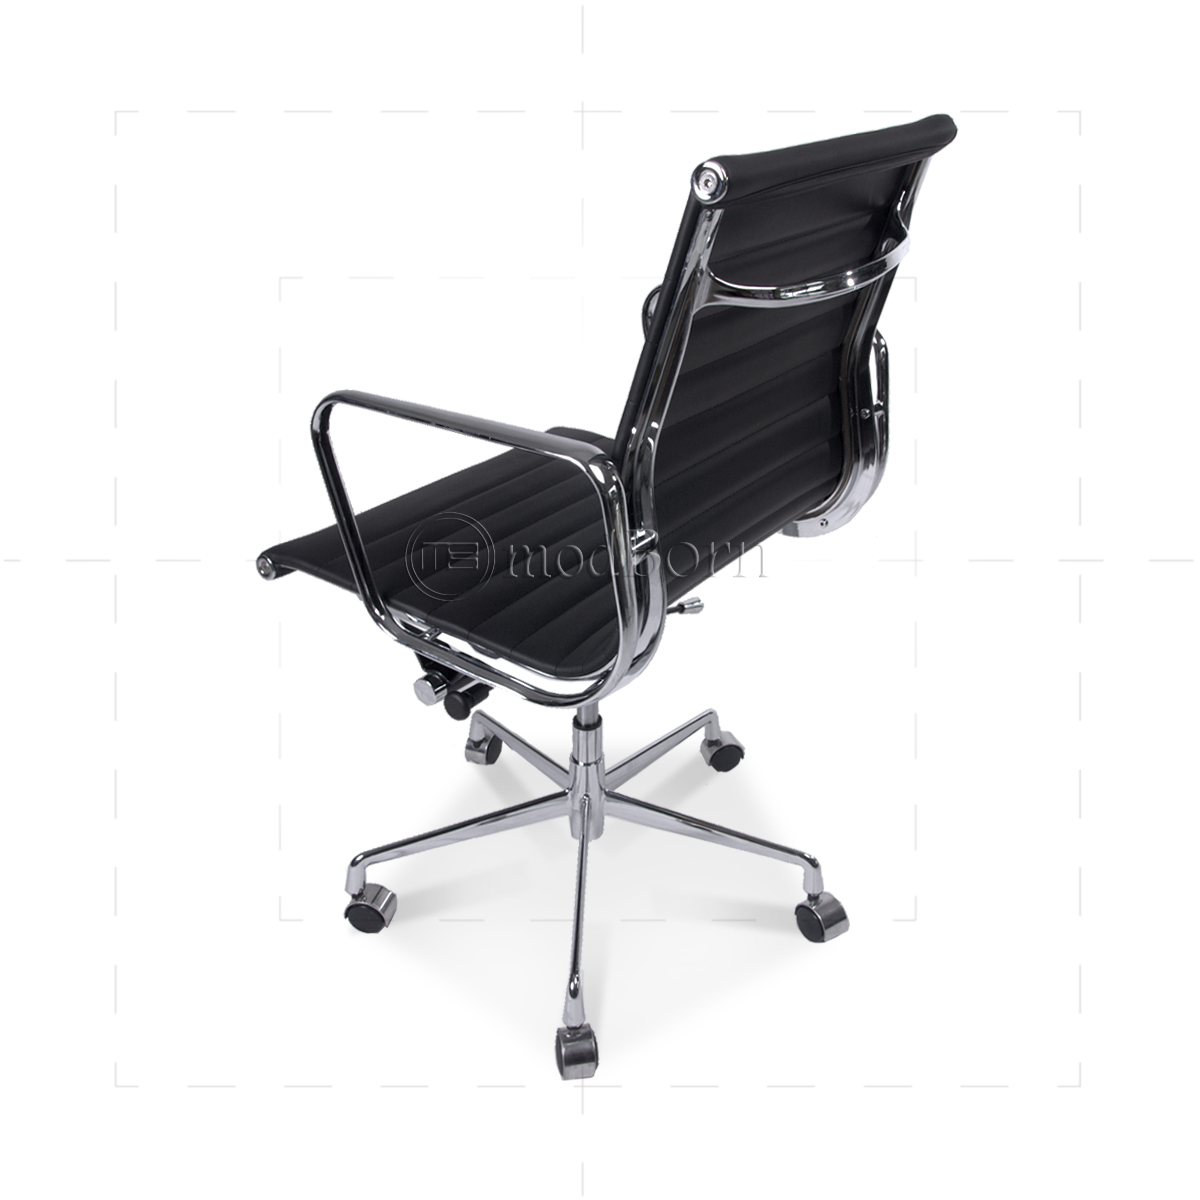 desk chair is too low 2 table ea117 eames style office back ribbed black